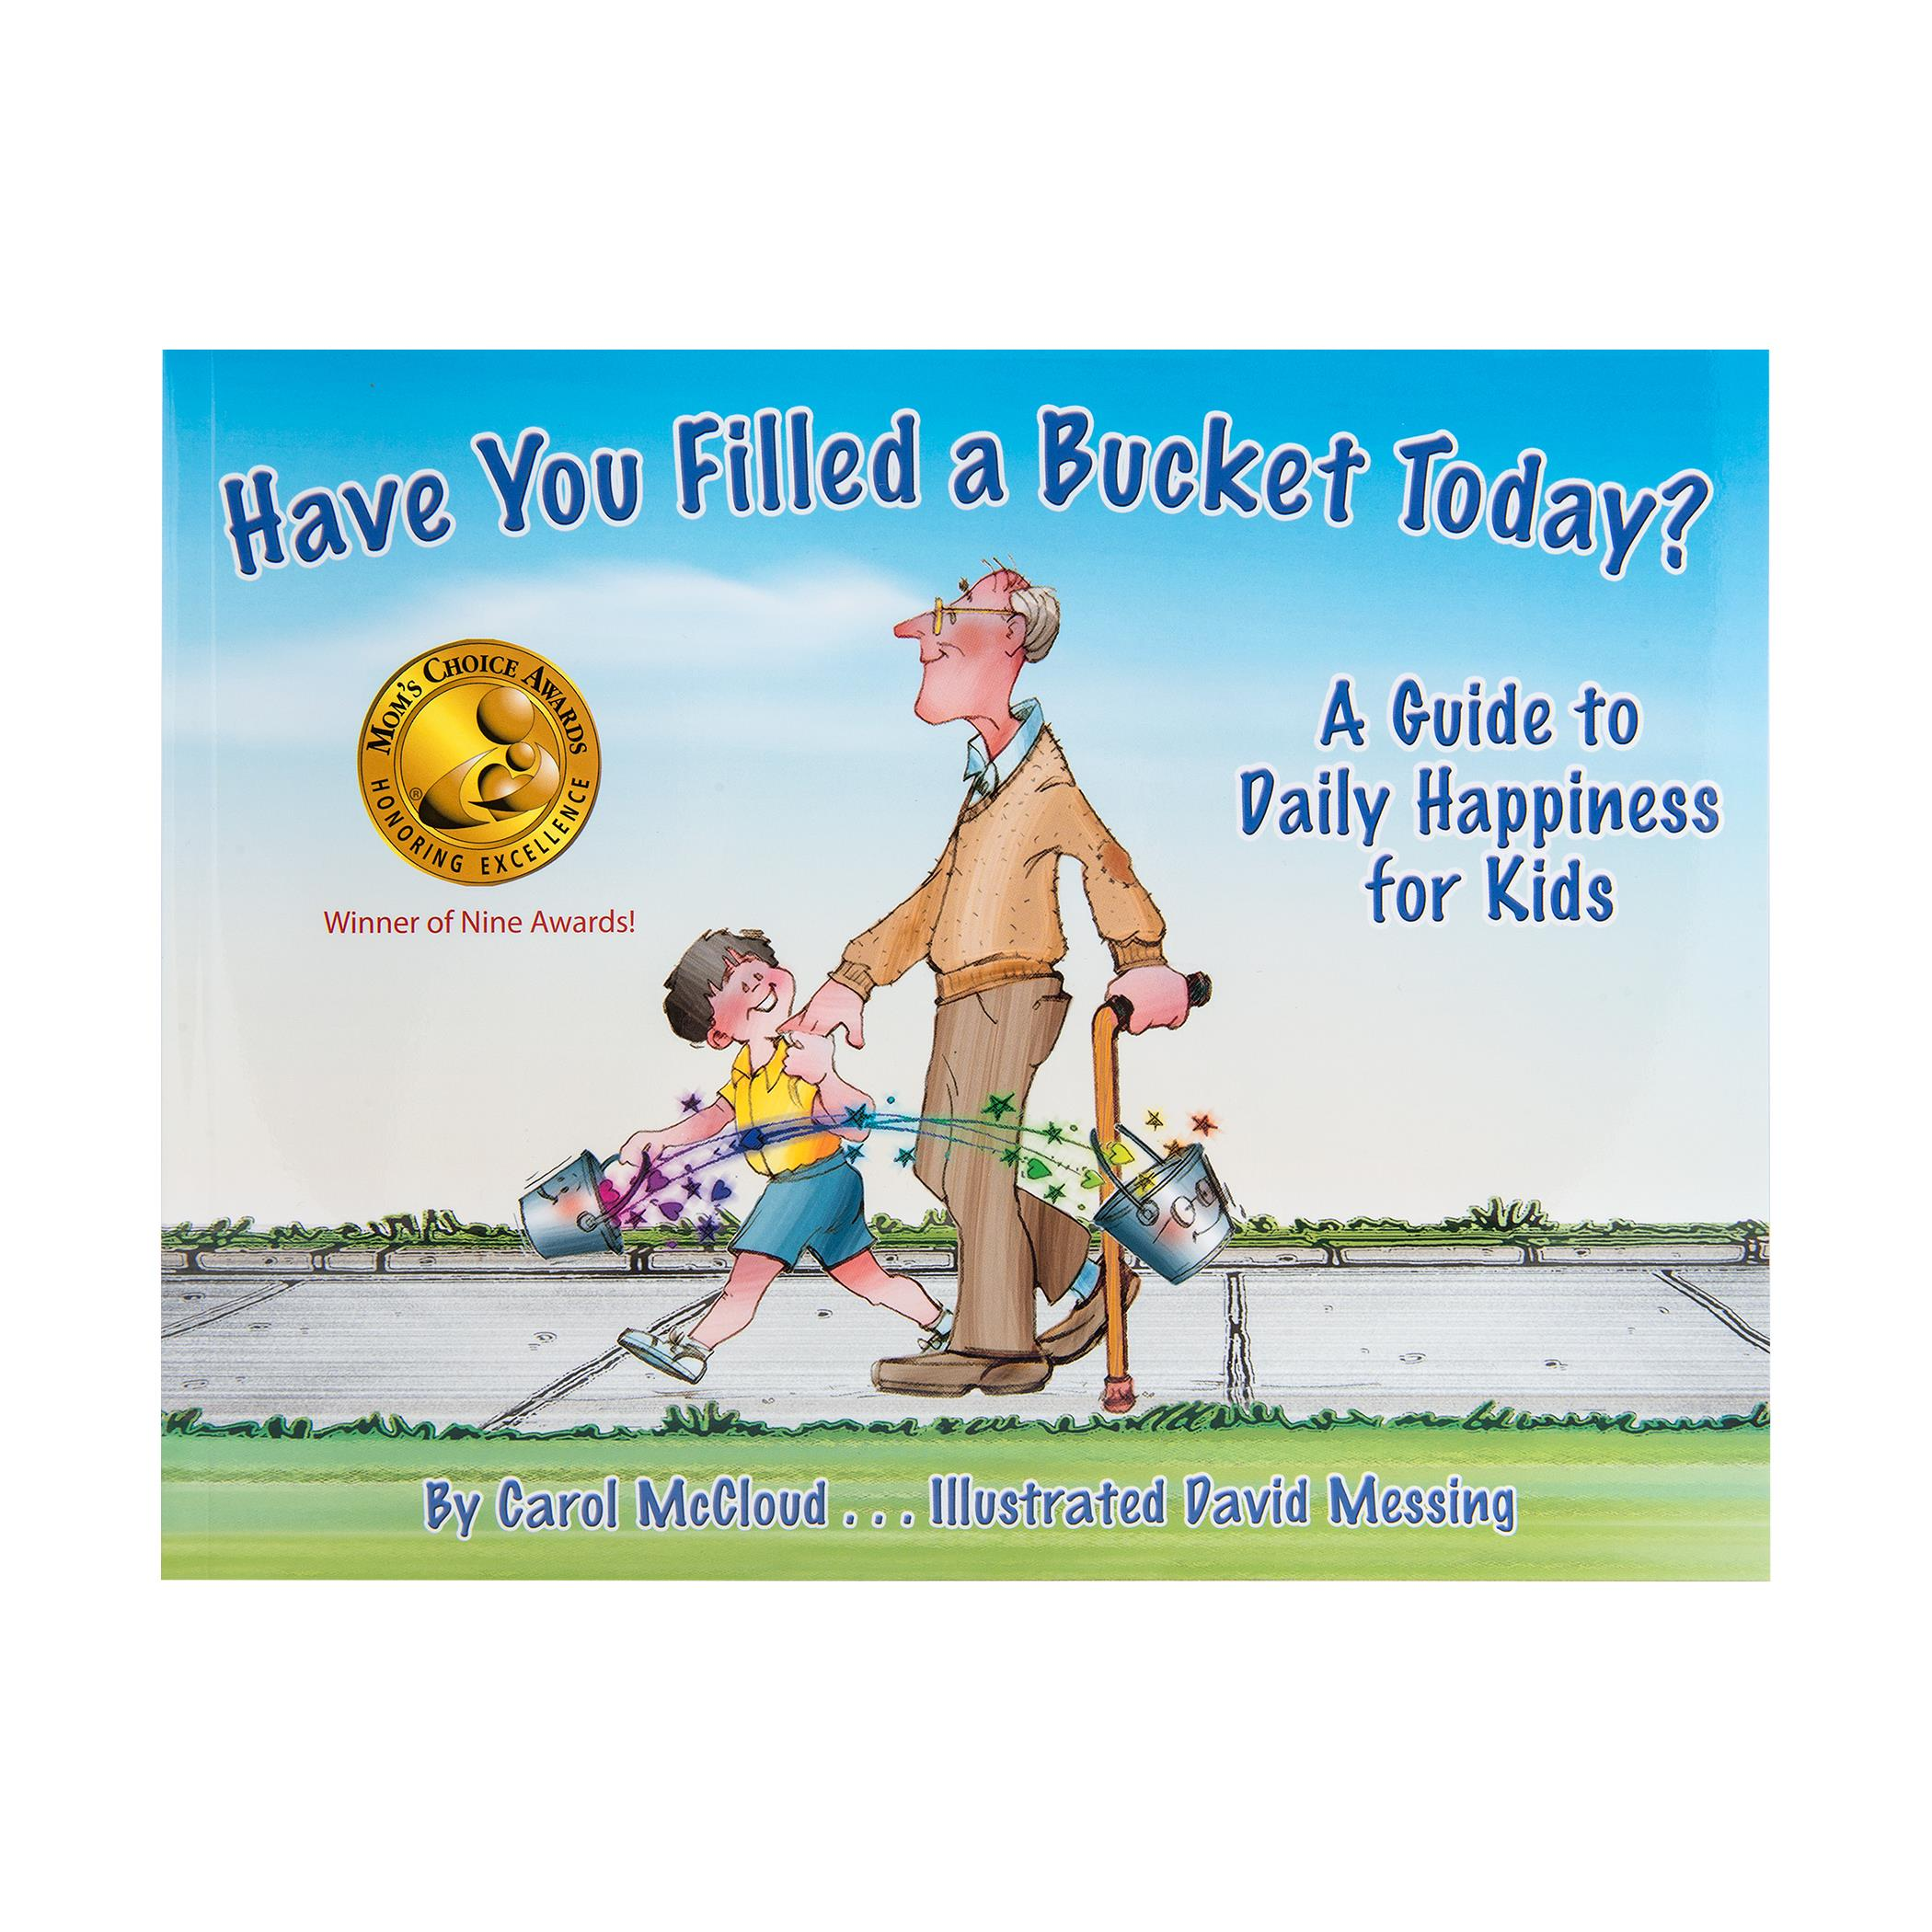 Are You A Bucket Filler